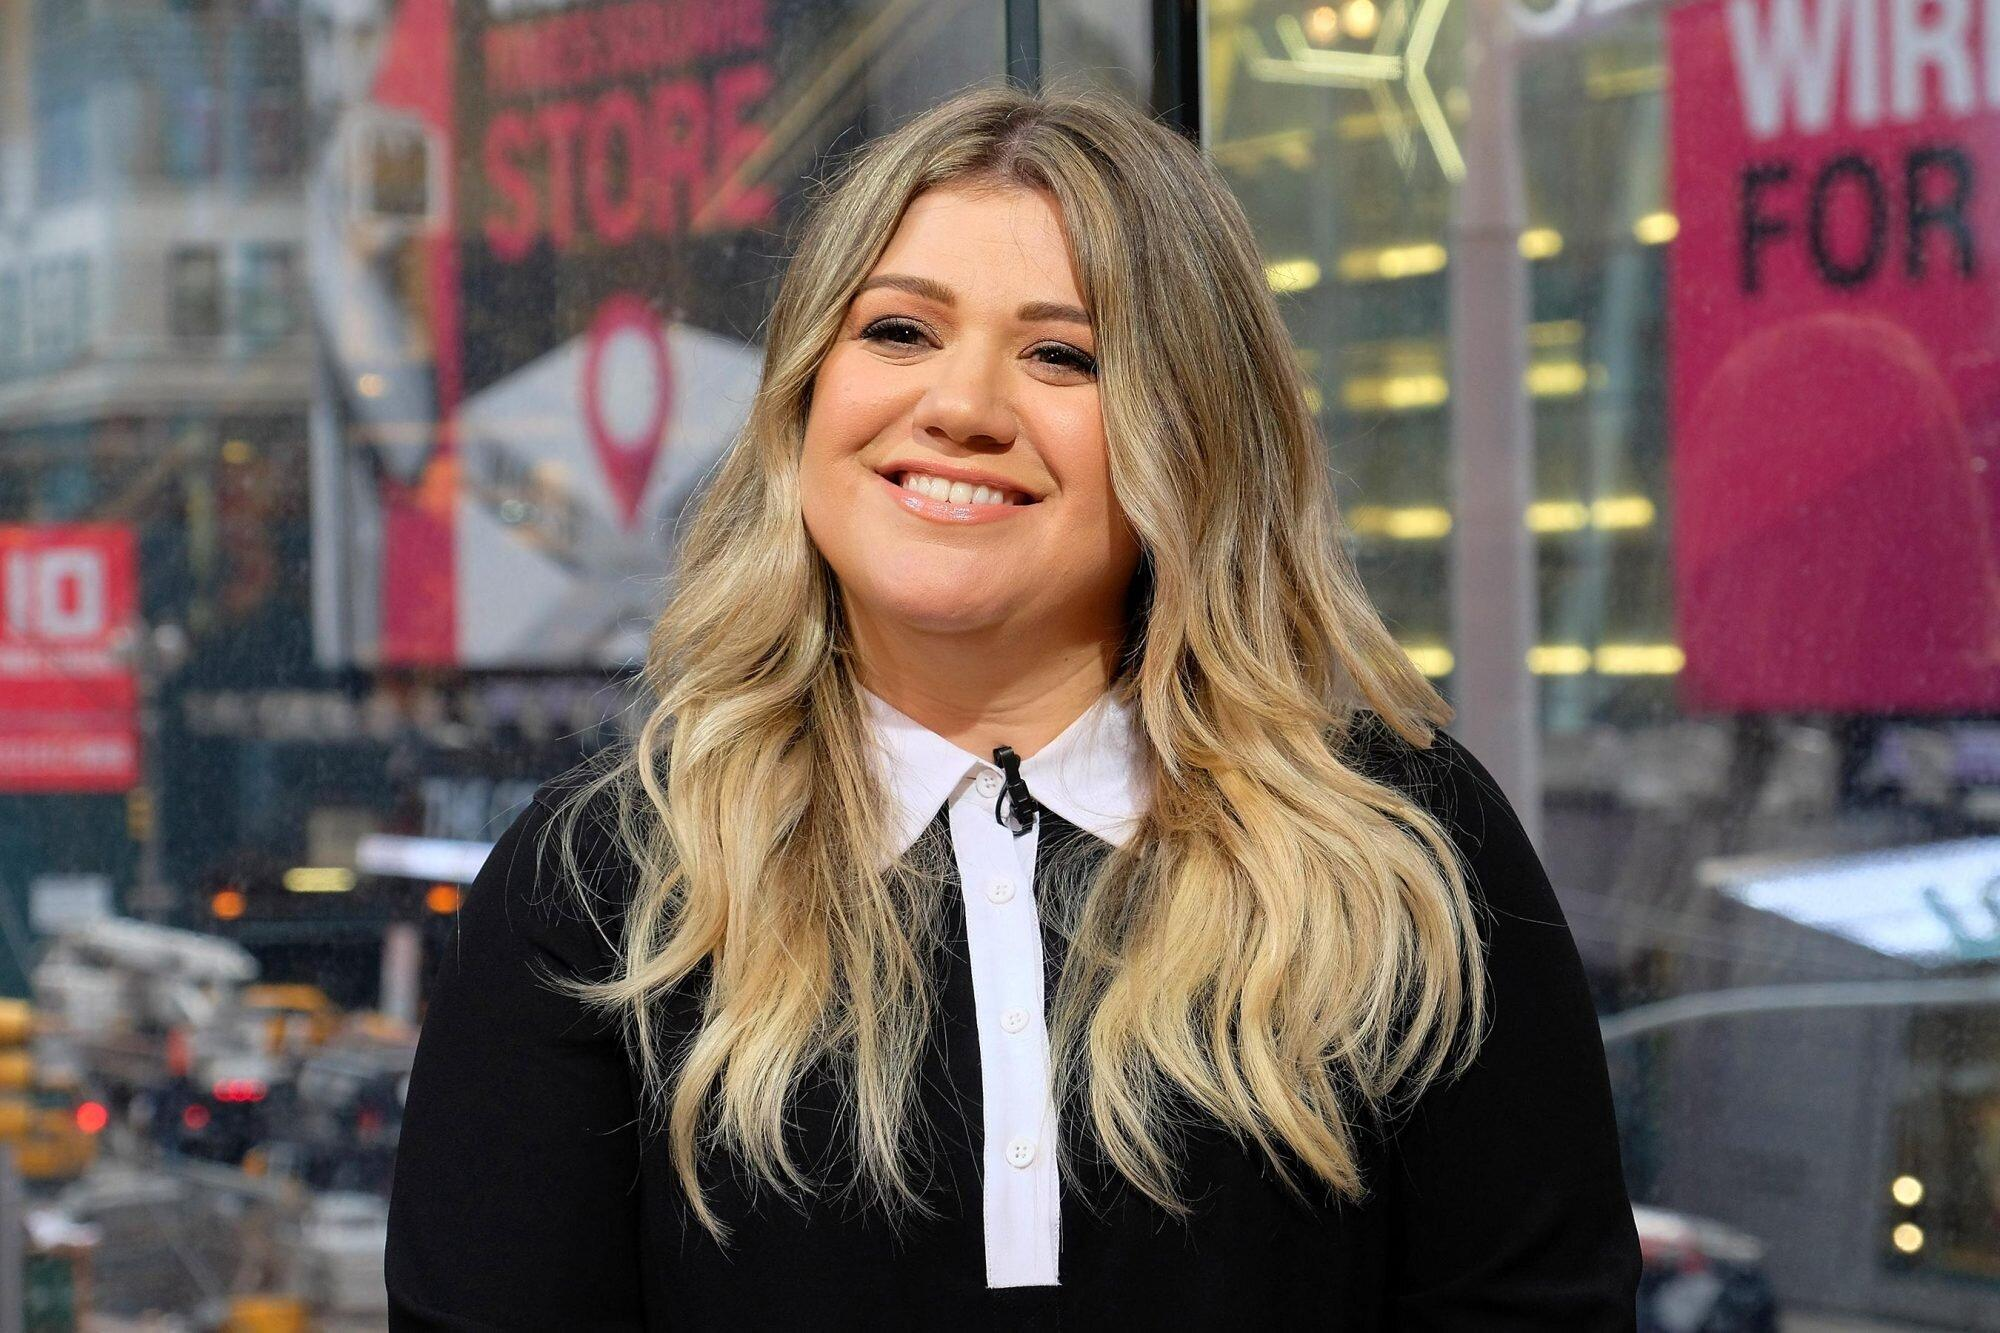 Kelly Clarkson Asks Judge to Legally Restore Her Last Name amid Divorce: Report